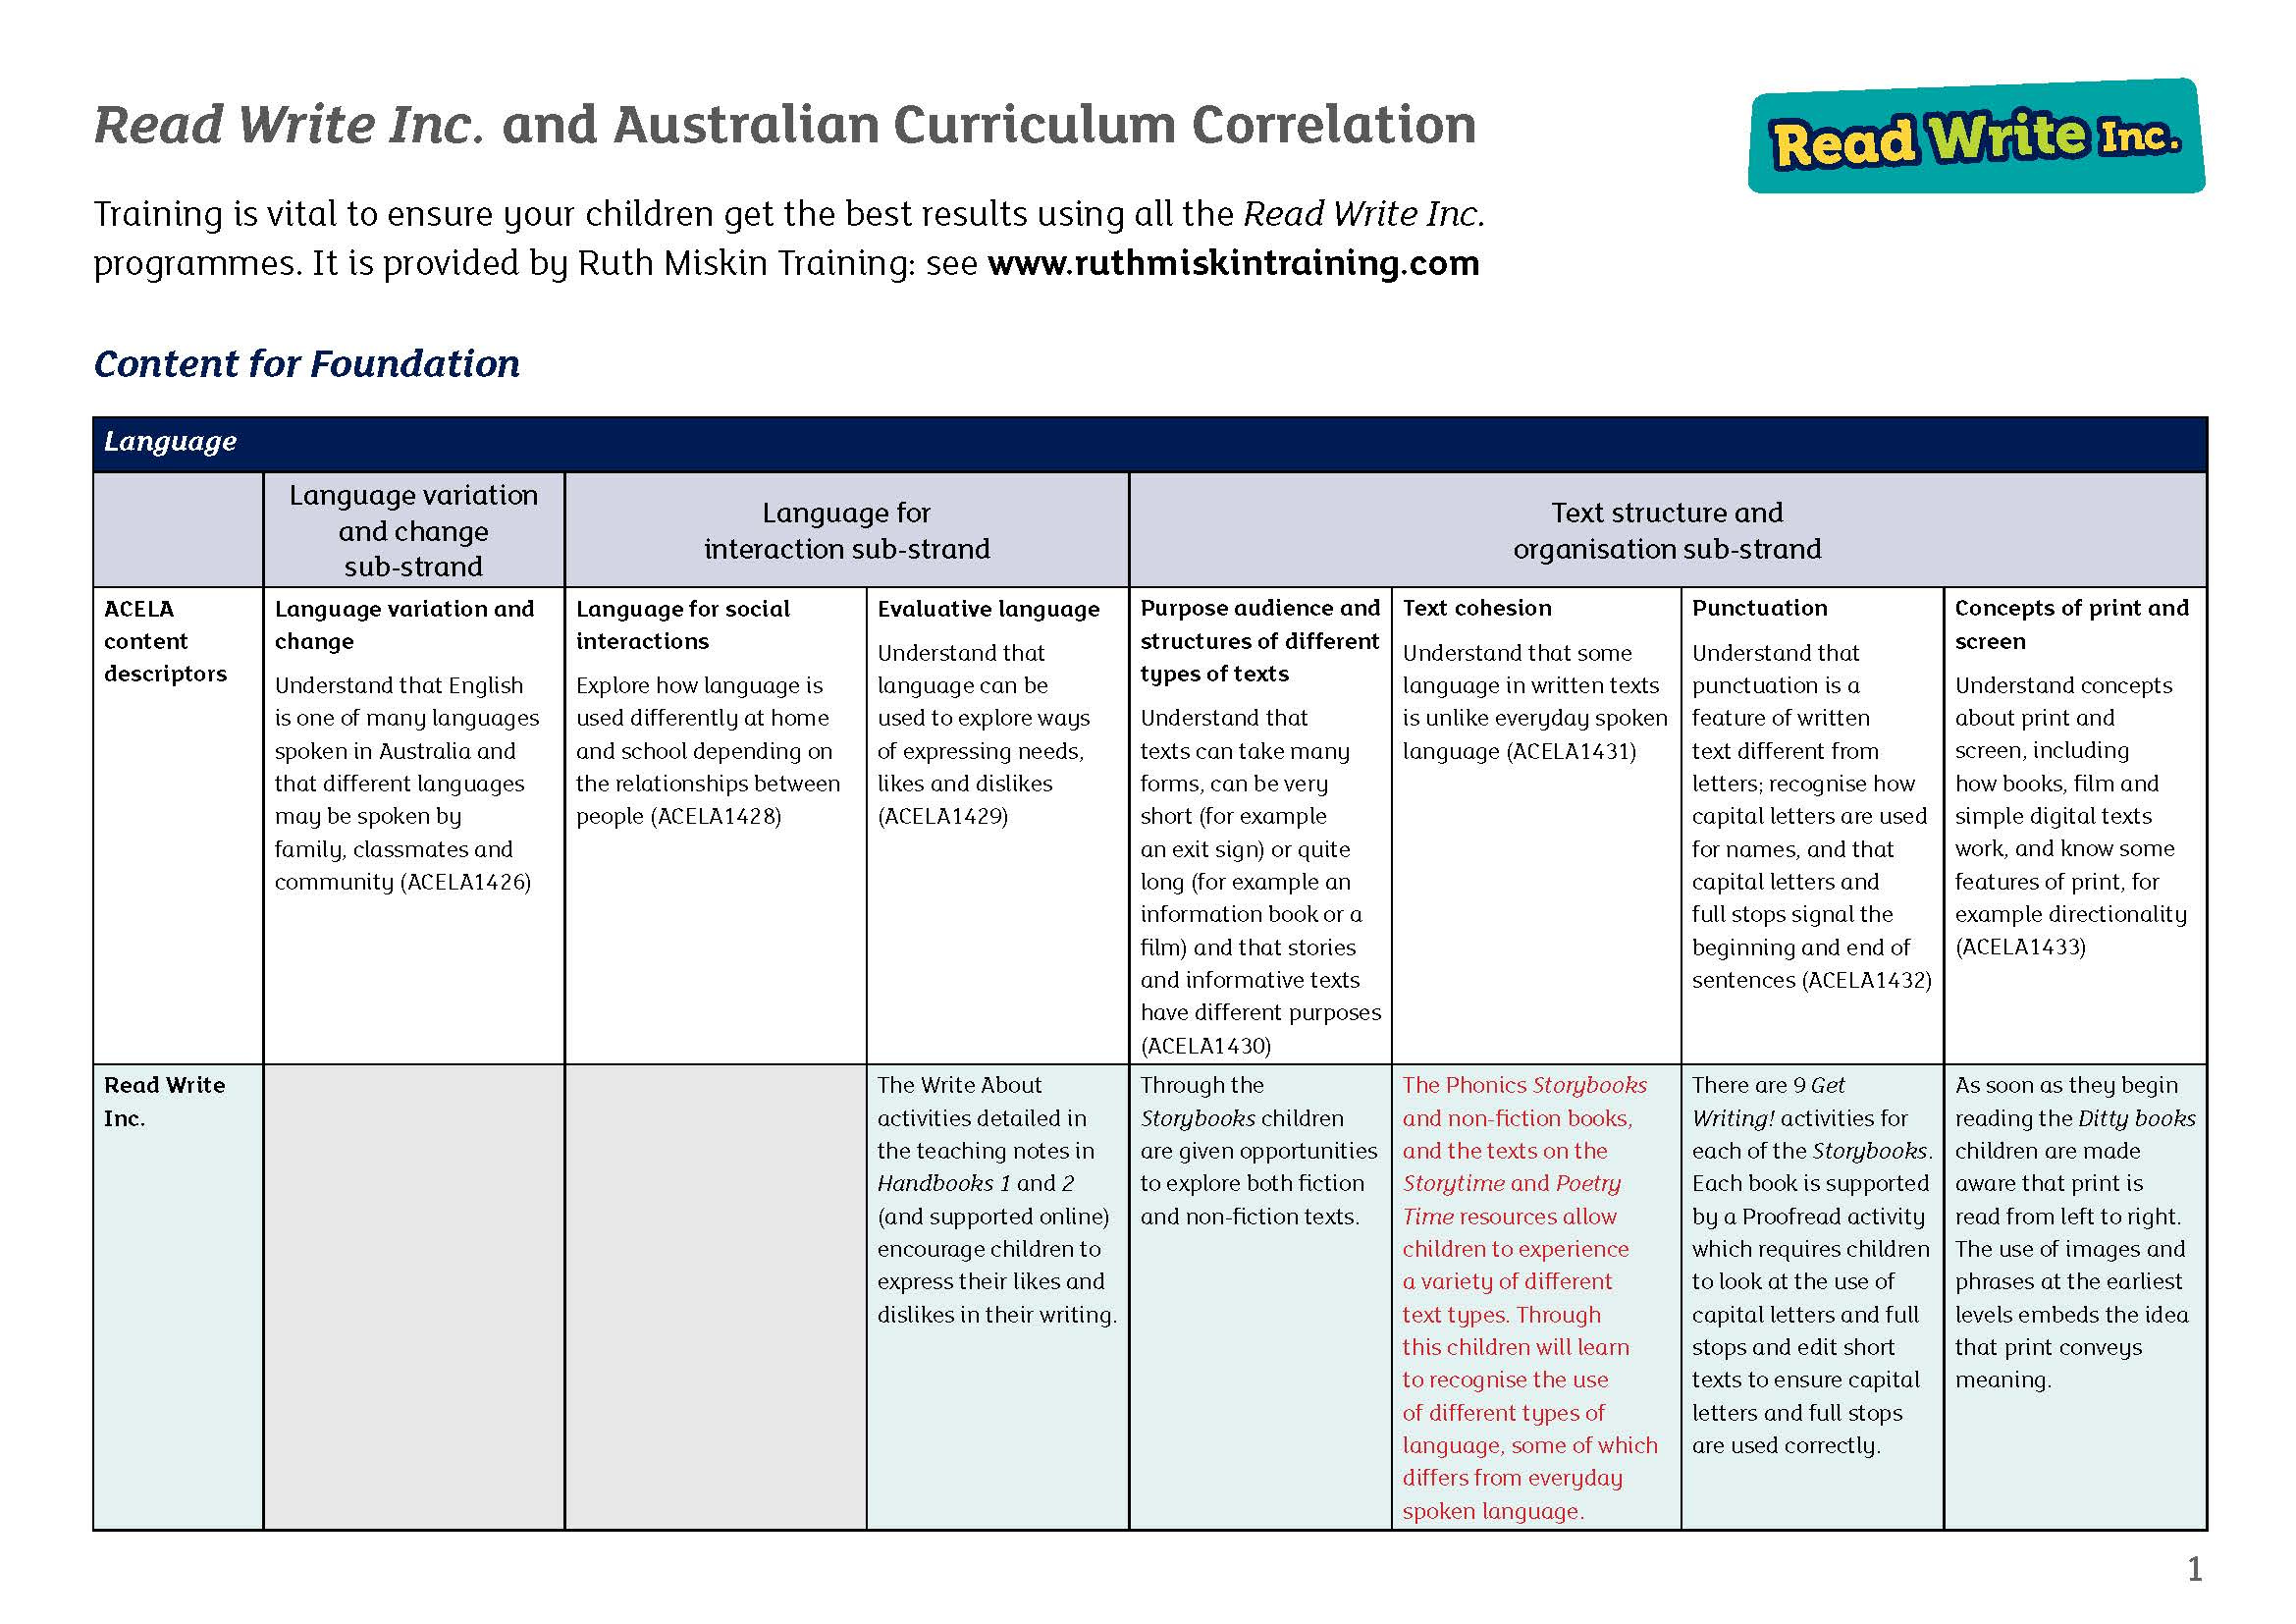 Read Write Inc. Spelling and Literacy and Language Australian Curriculum Match (PDF)